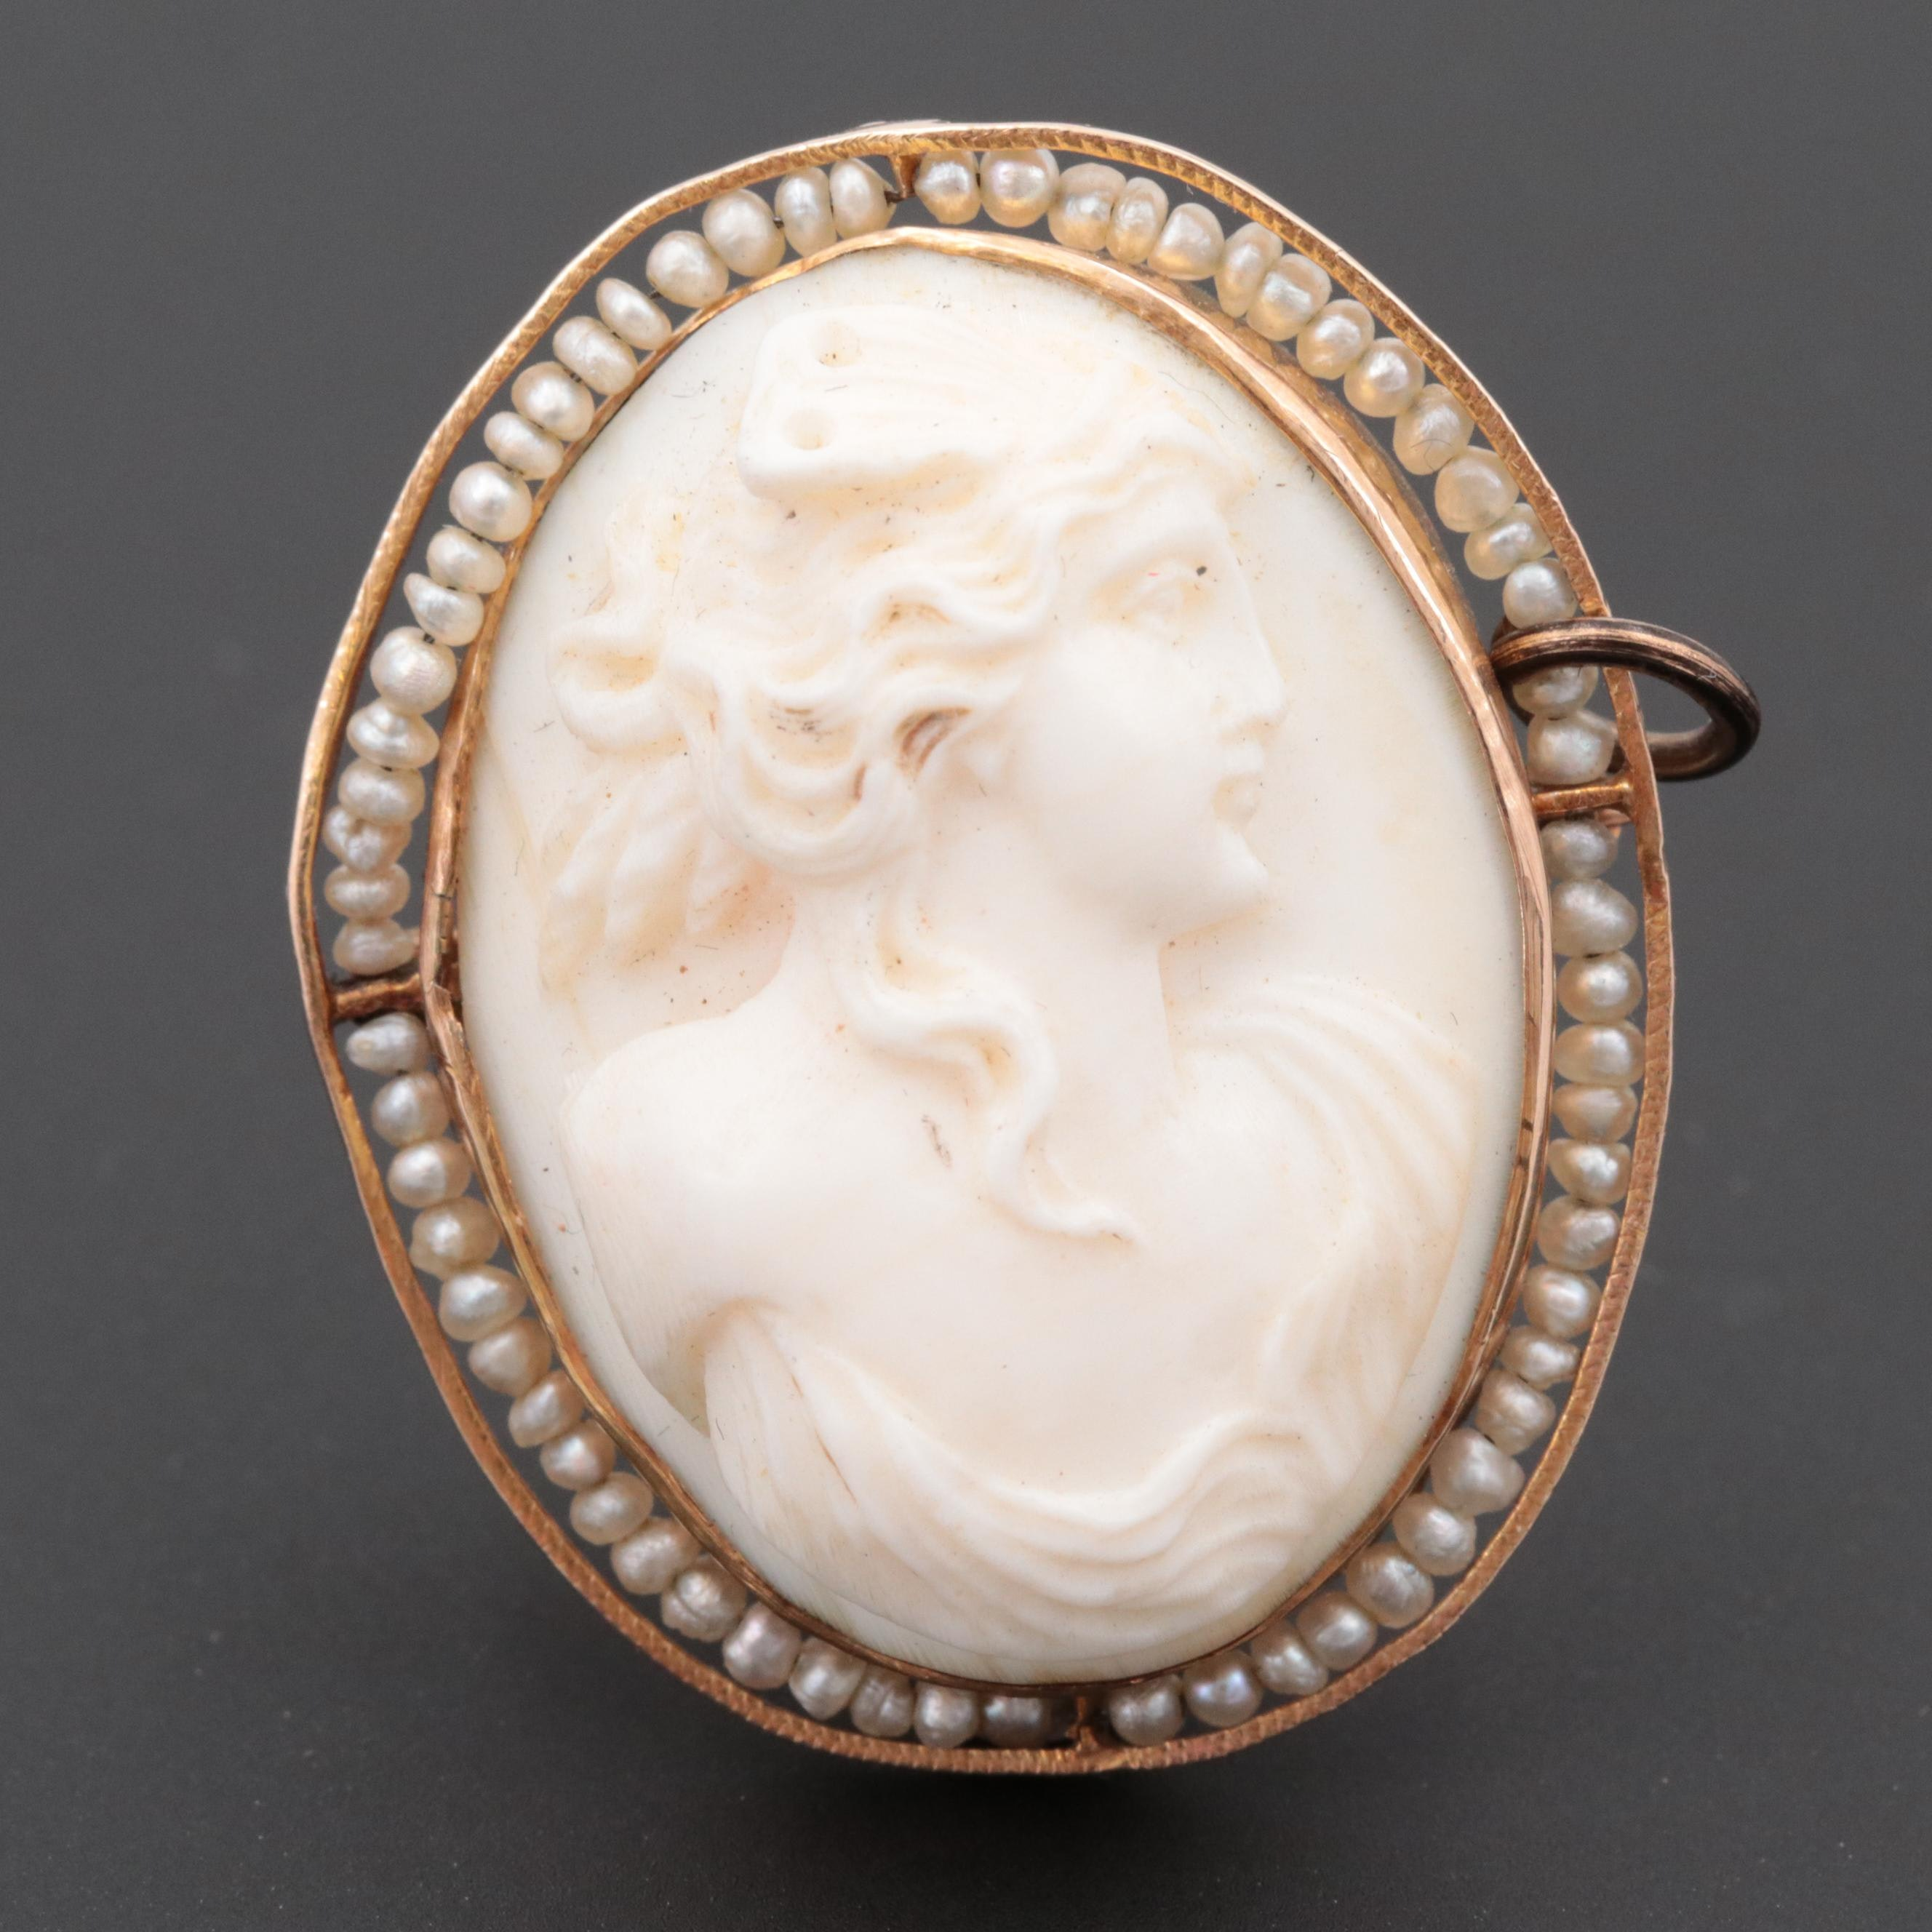 Victorian 10K Yellow Gold Shell and Cultured Pearl High Relief Cameo Brooch